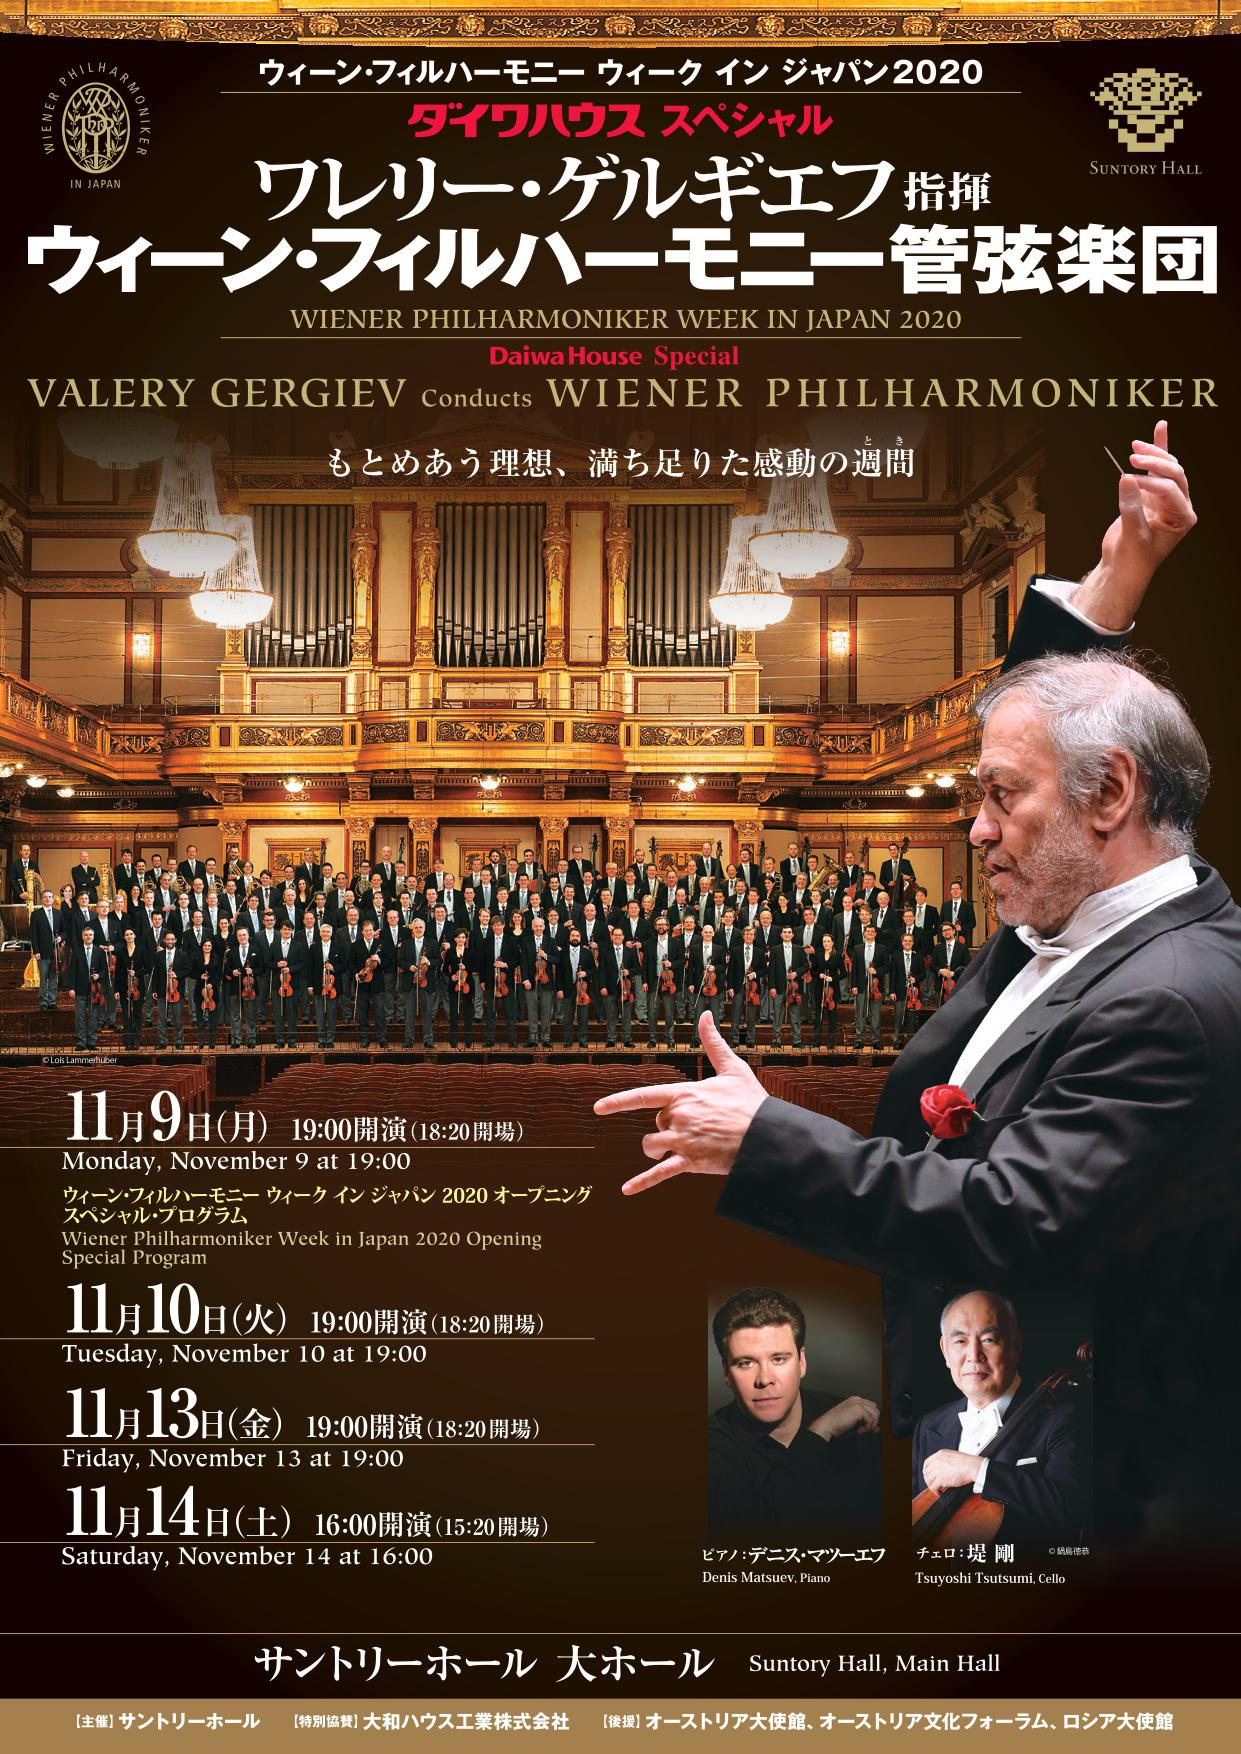 The Vienna Philharmonic is flying to Japan